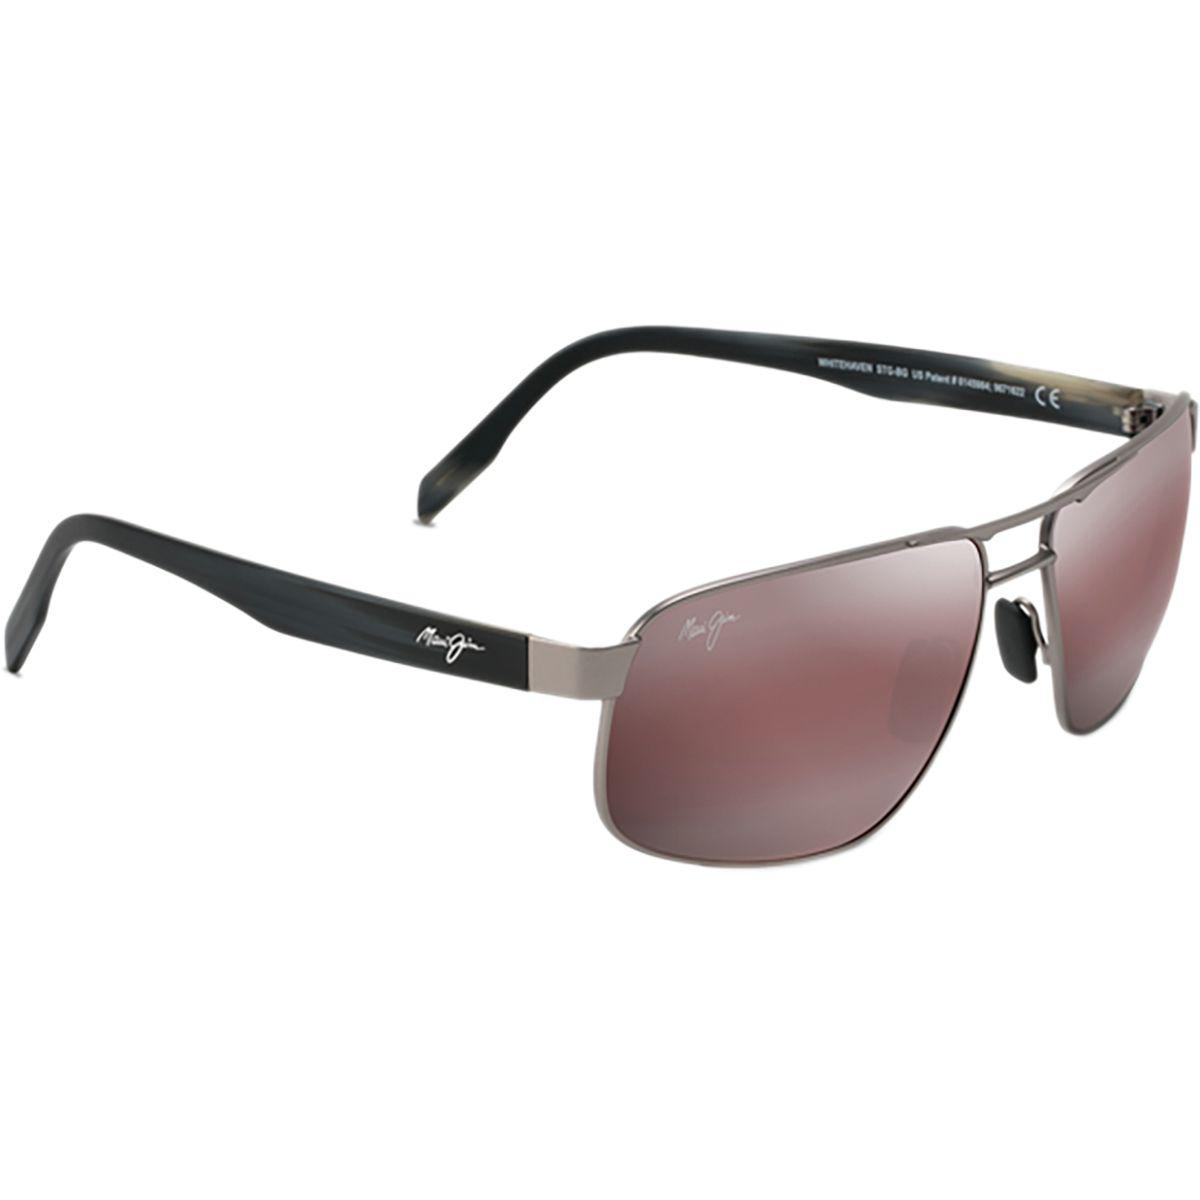 f66c111d26 Lyst - Maui Jim Whitehaven Polarized Sunglasses in Gray for Men